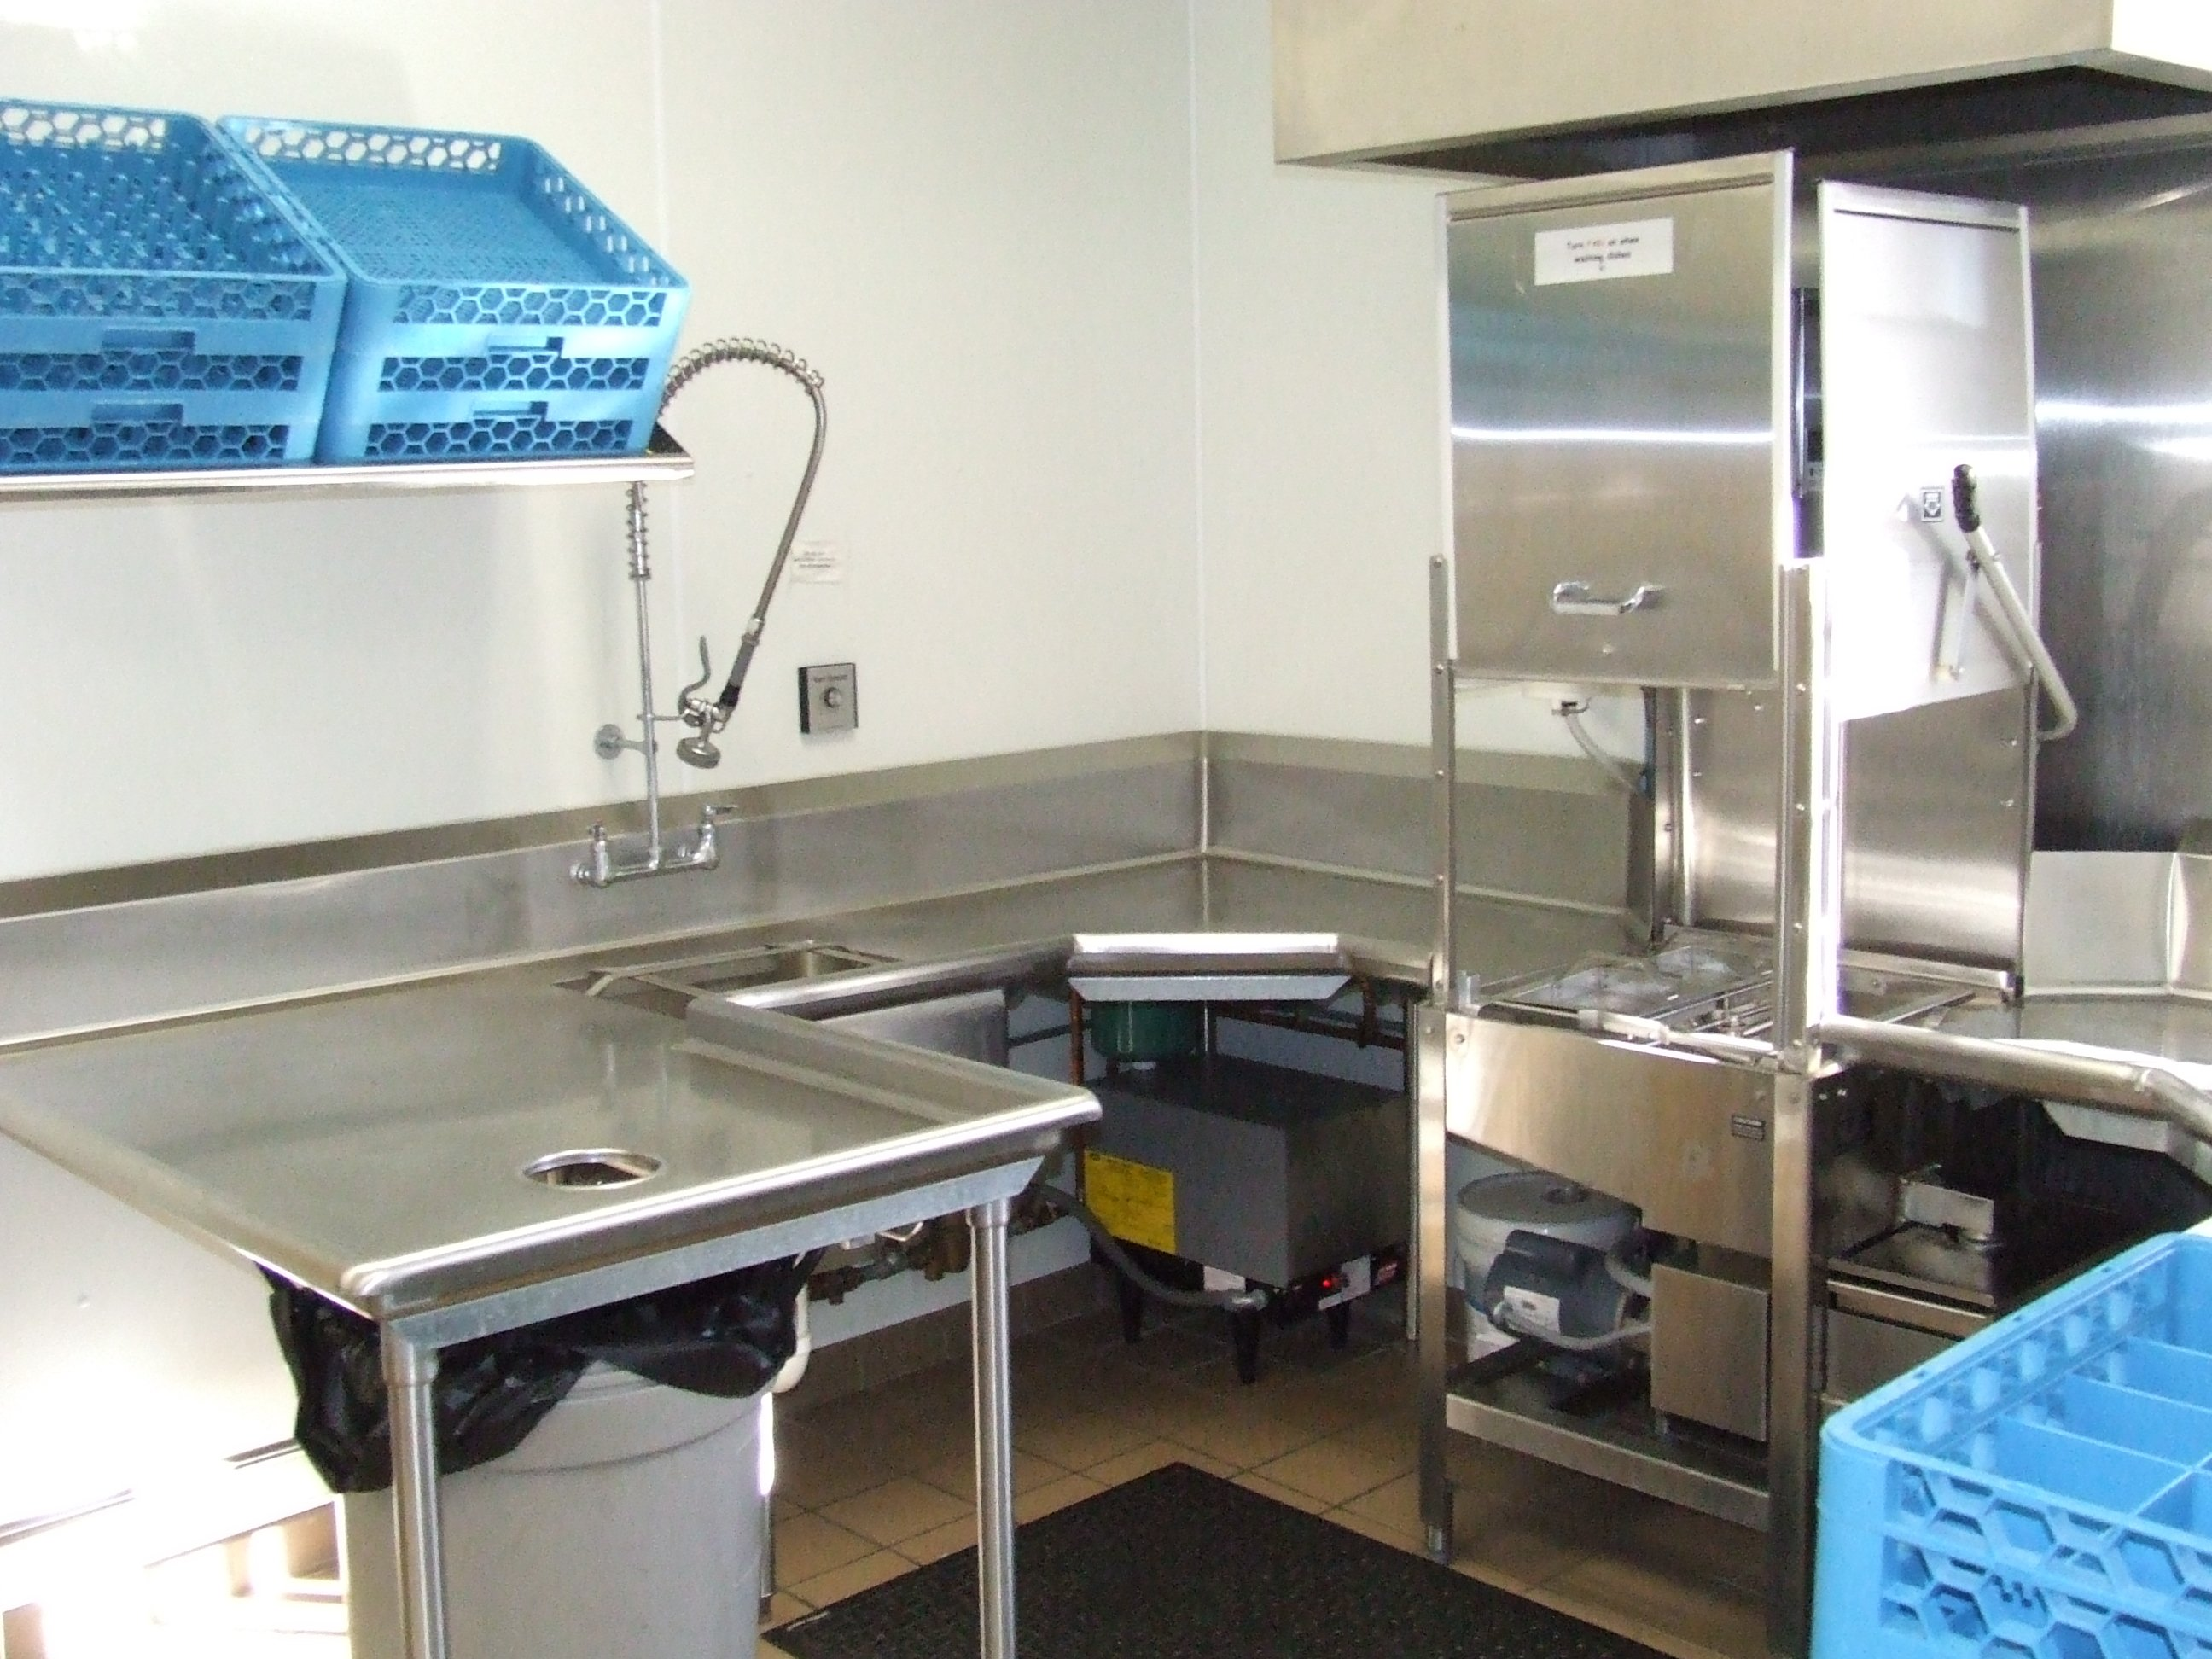 Kitchen - commercial dishwasher area